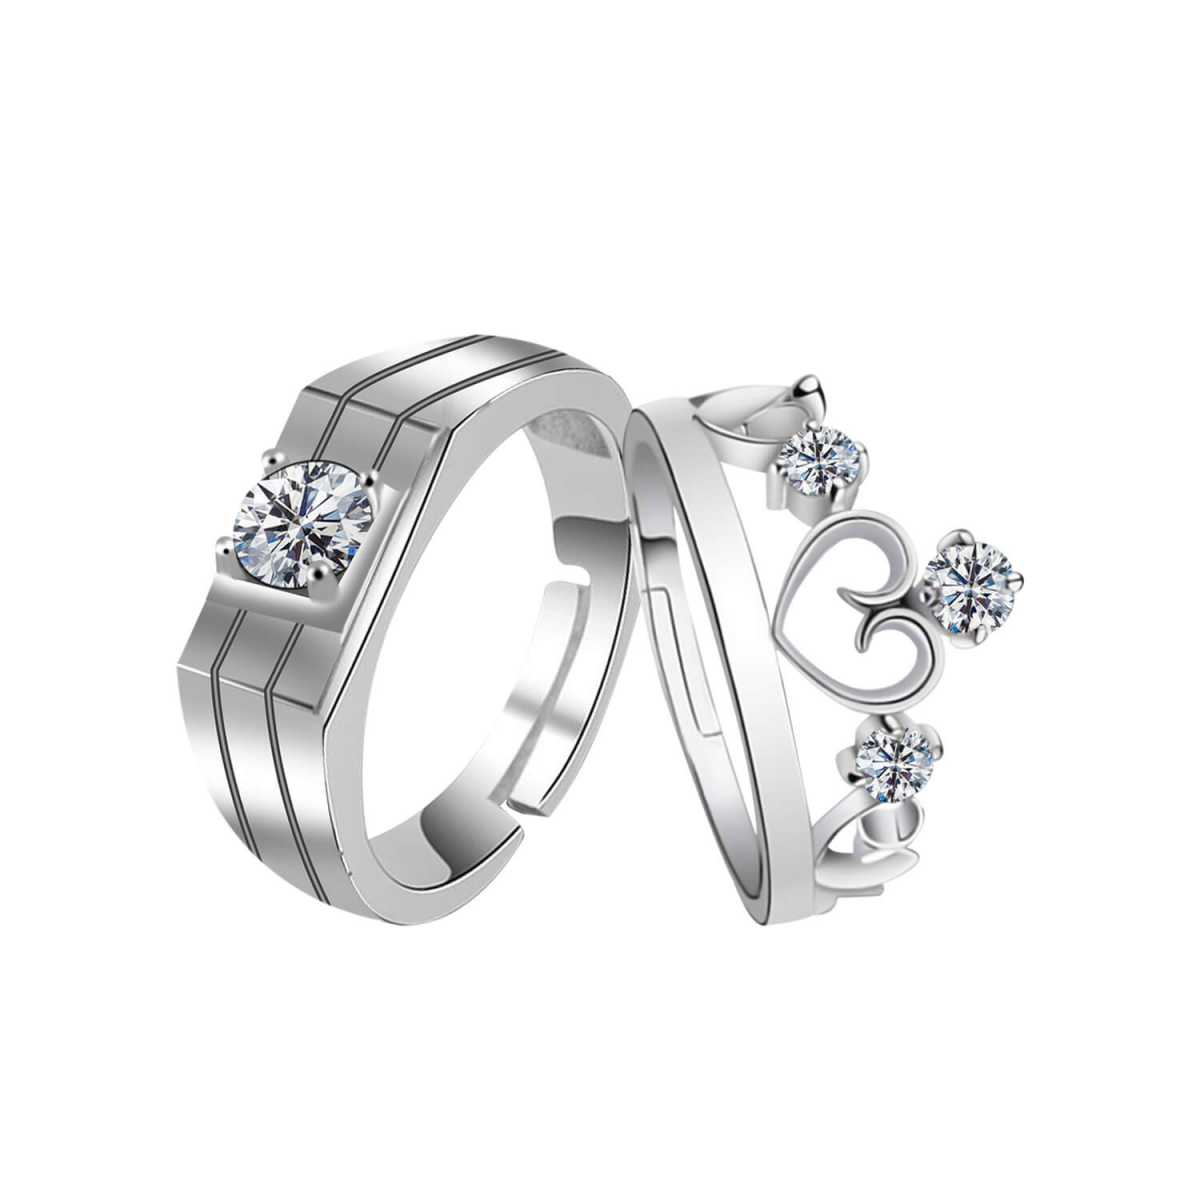 SILVERSHINE,silver plated ritzy look king and queen crown shape ring adjustable couple ring for men and women.